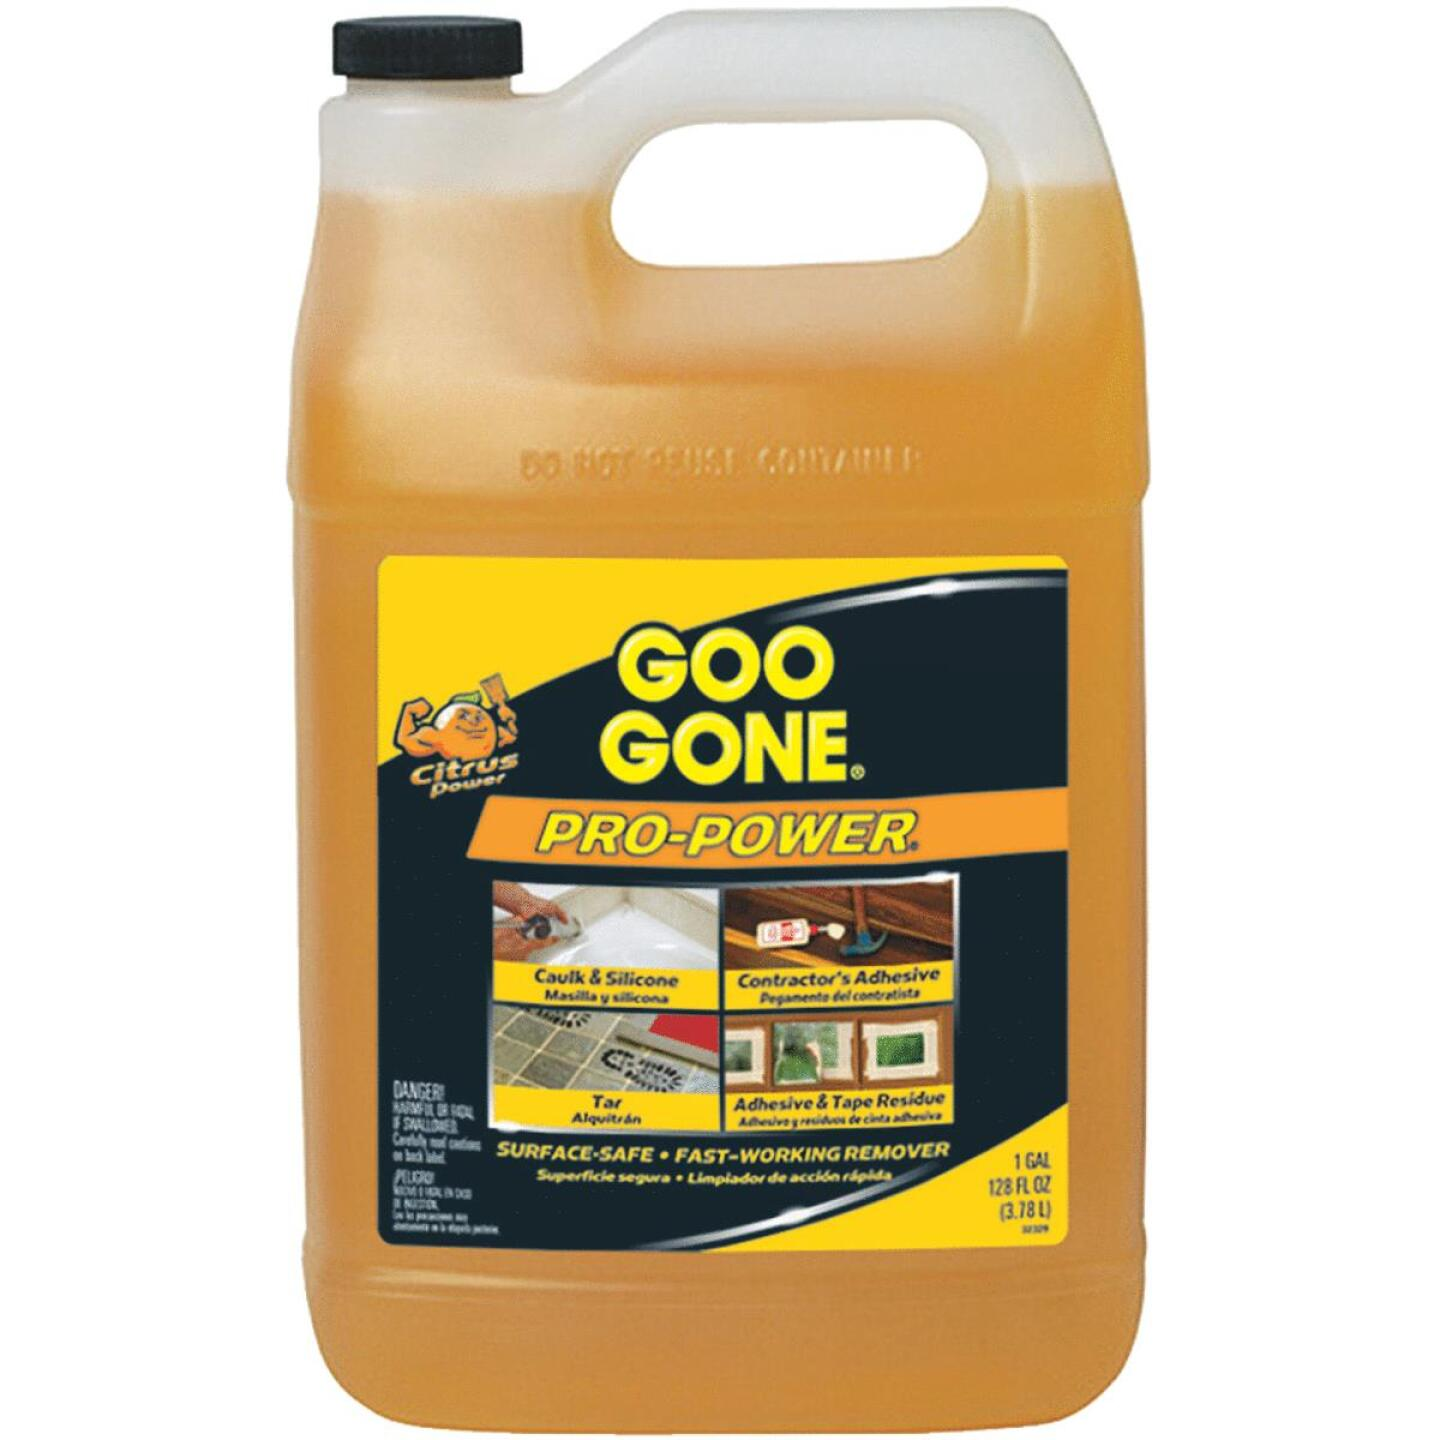 Goo Gone 1 Gal. Pro-Power Adhesive Remover Image 254